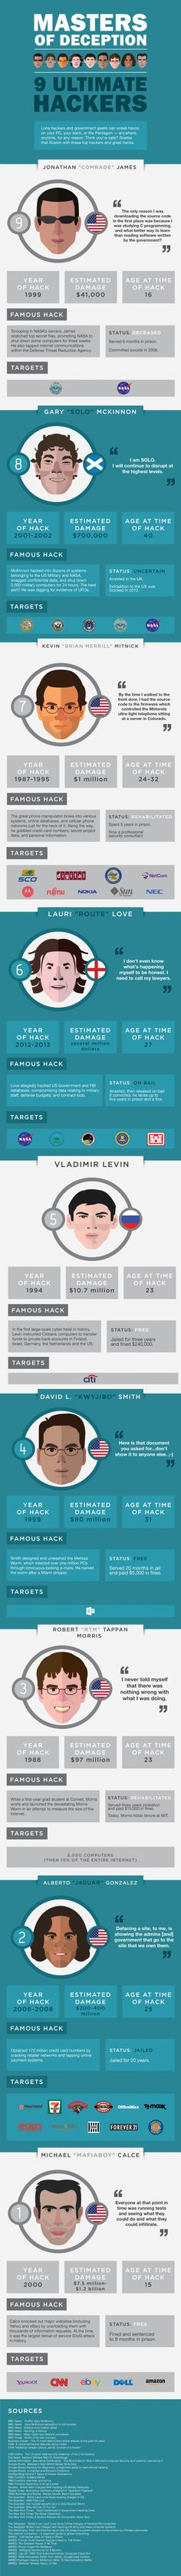 Masters Of Deception 9 Ultimate Hackers   #Infographic #Hackers #Hacking